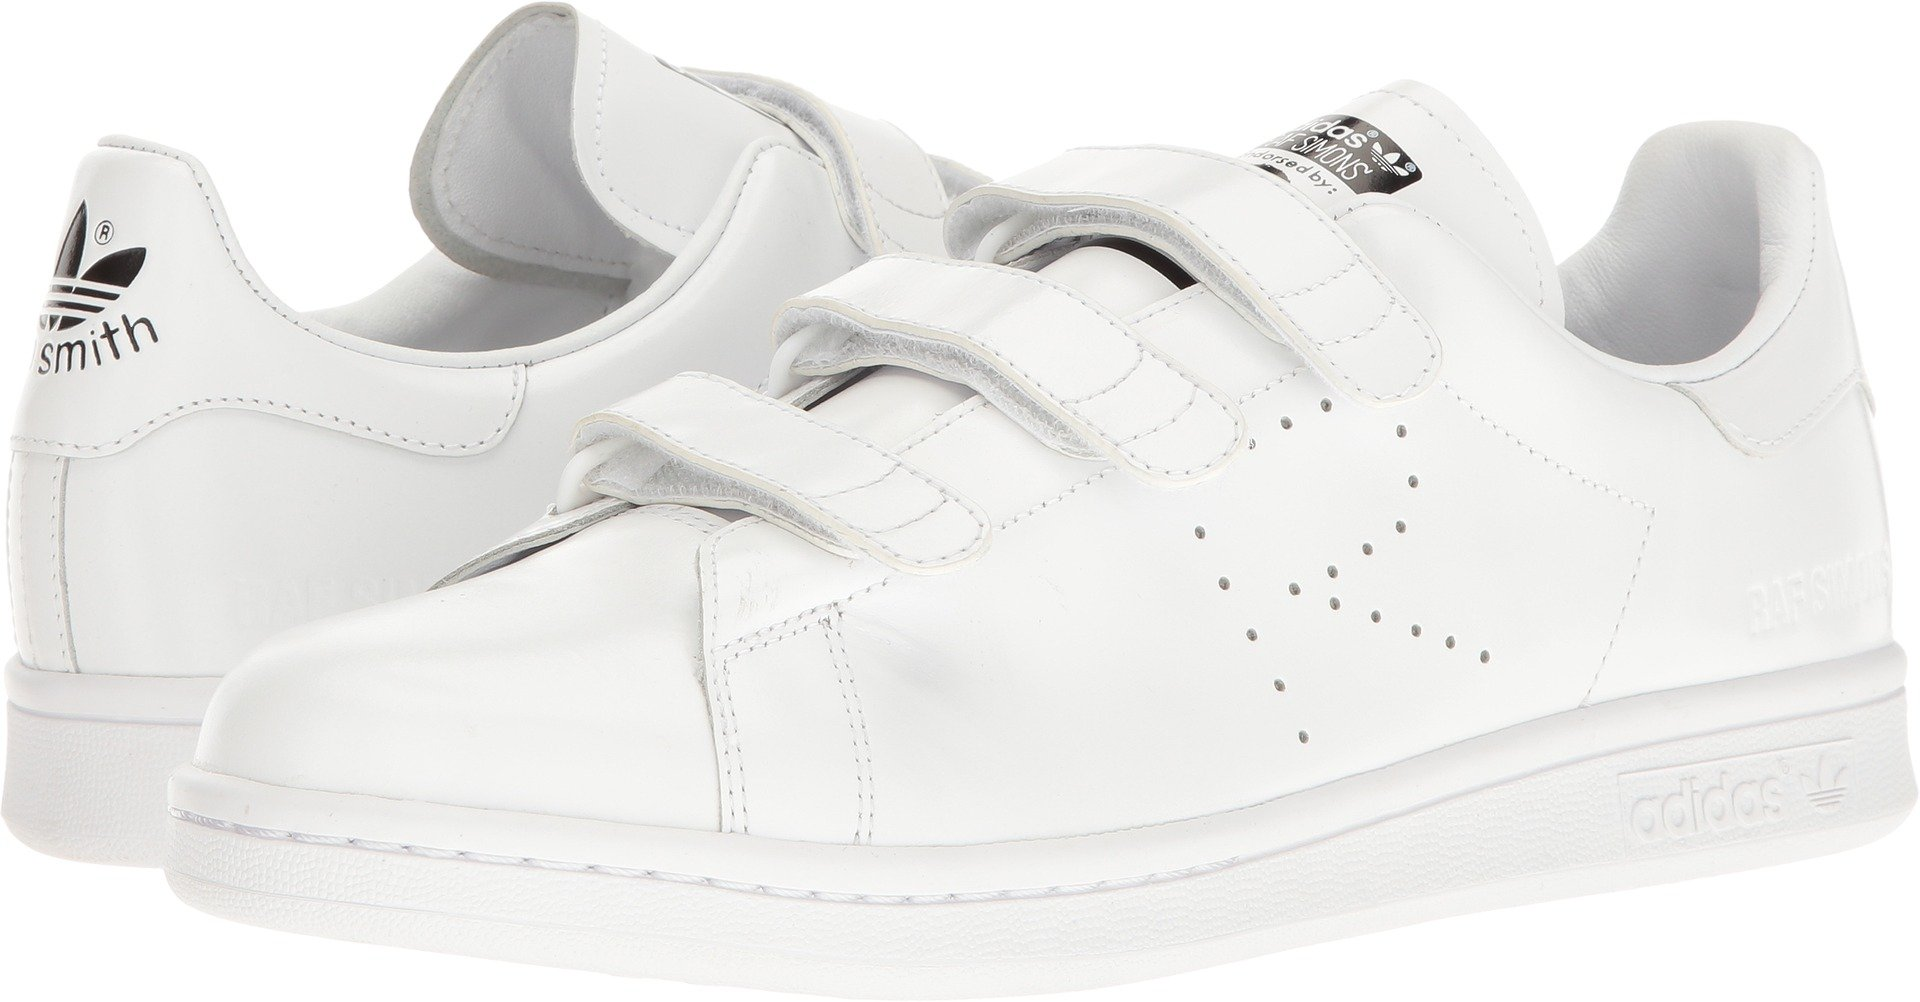 adidas by Raf Simons Unisex Raf Simons Stan Smith Comfort Footwear White/Footwear White/Core Black 5 M UK